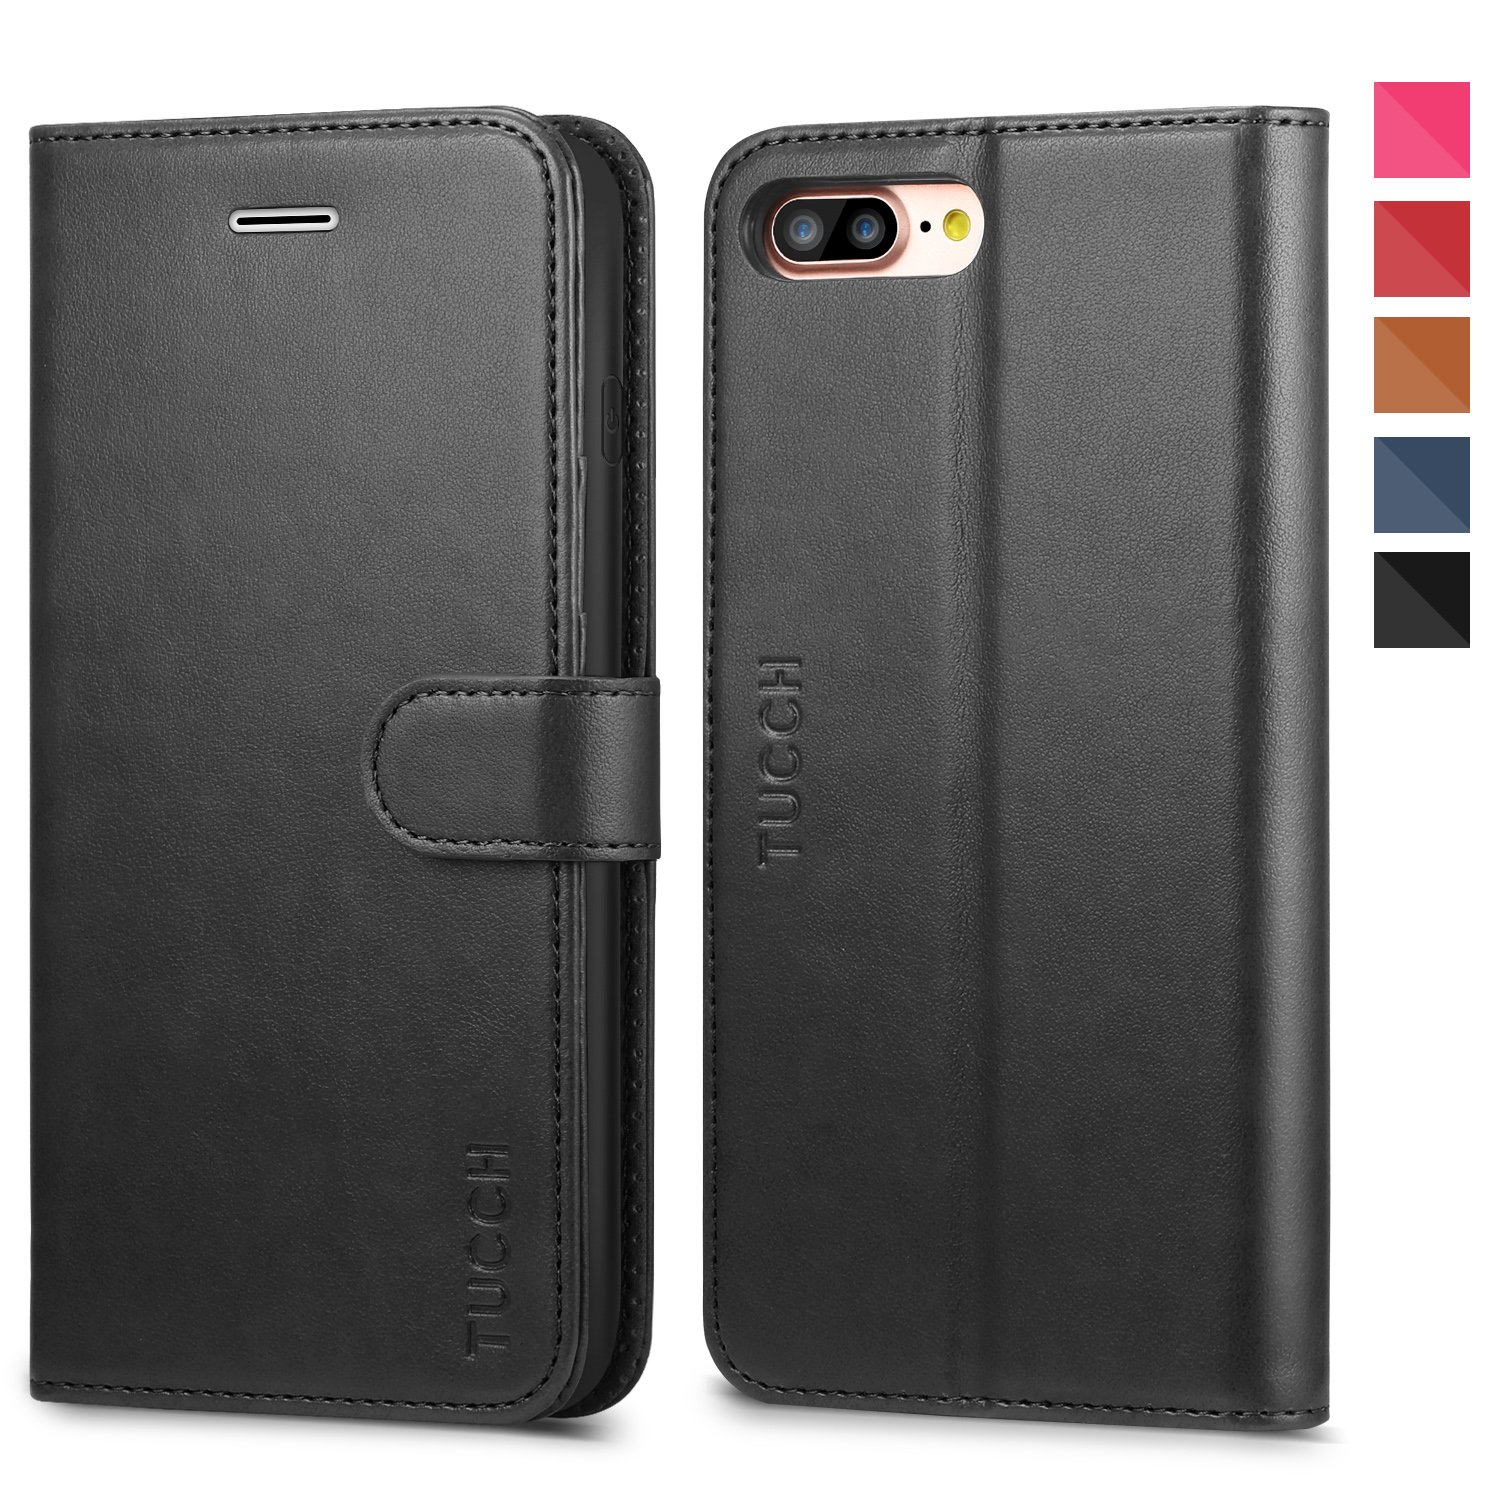 iPhone 8 Plus Wallet Case, iPhone 7 Plus Case, TUCCH Premium PU Leather Flip Folio Case with Card Slot, Cash Clip, Stand Holder and Magnetic Closure [TPU Shockproof Interior Protective Case], Black by TUCCH (Image #2)